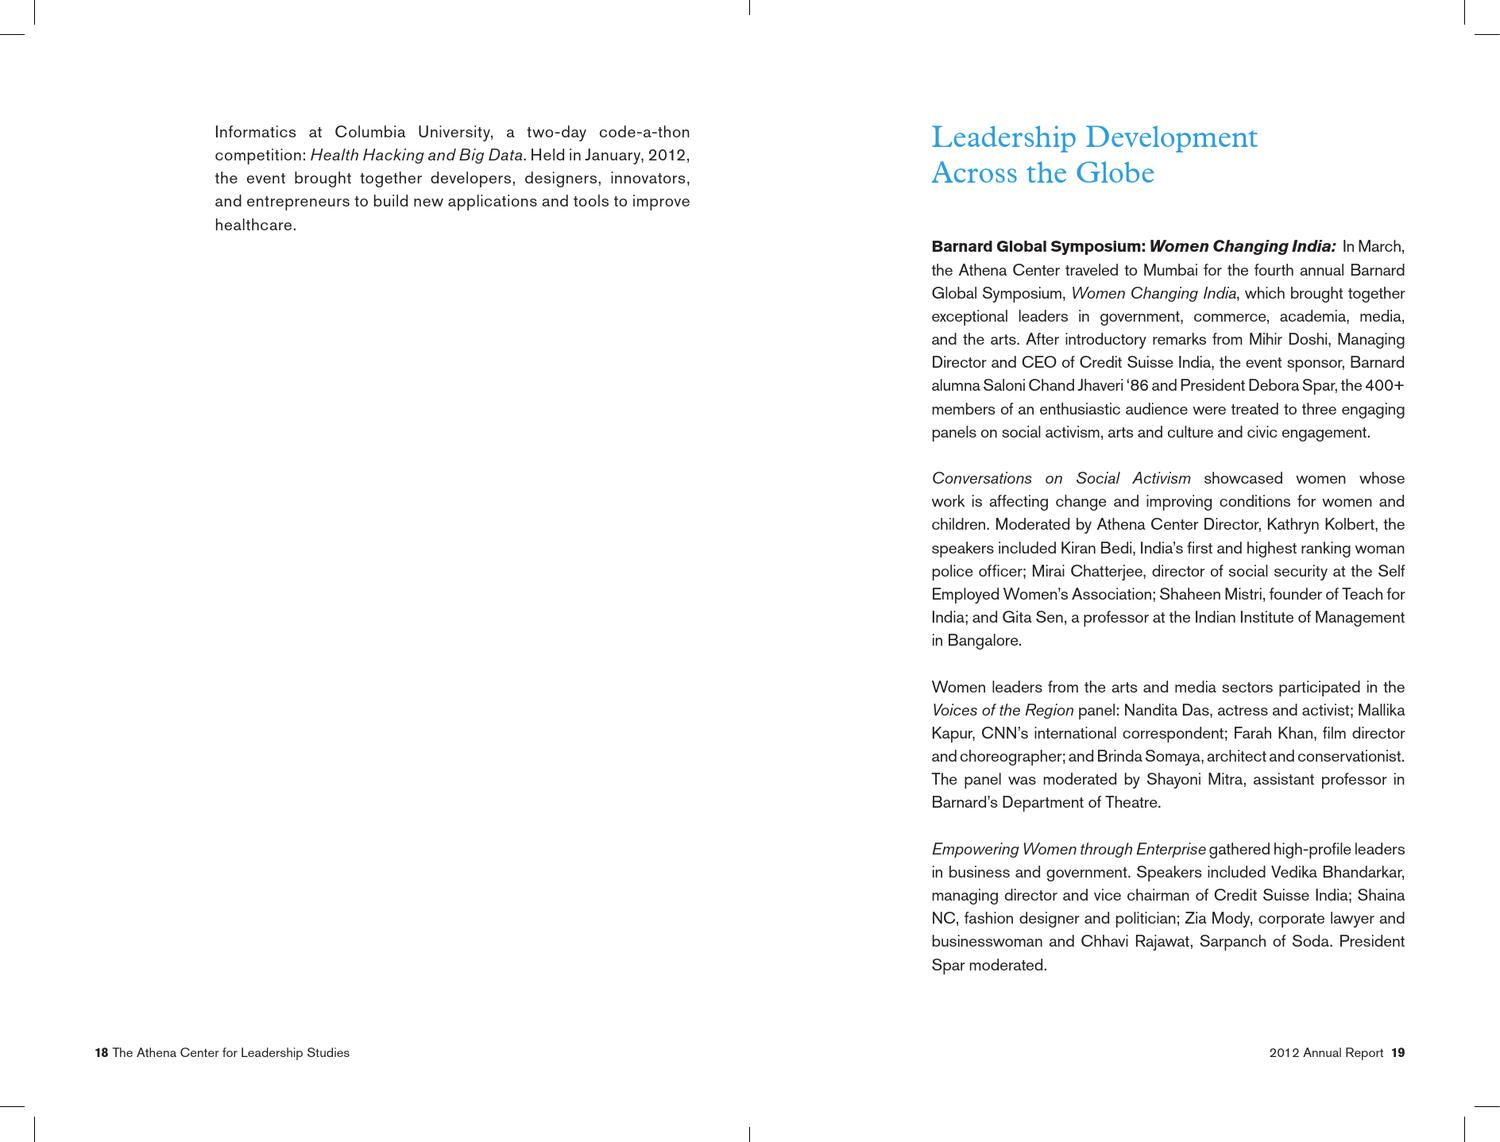 2012 Annual Report by Athena Center for Leadership Studies